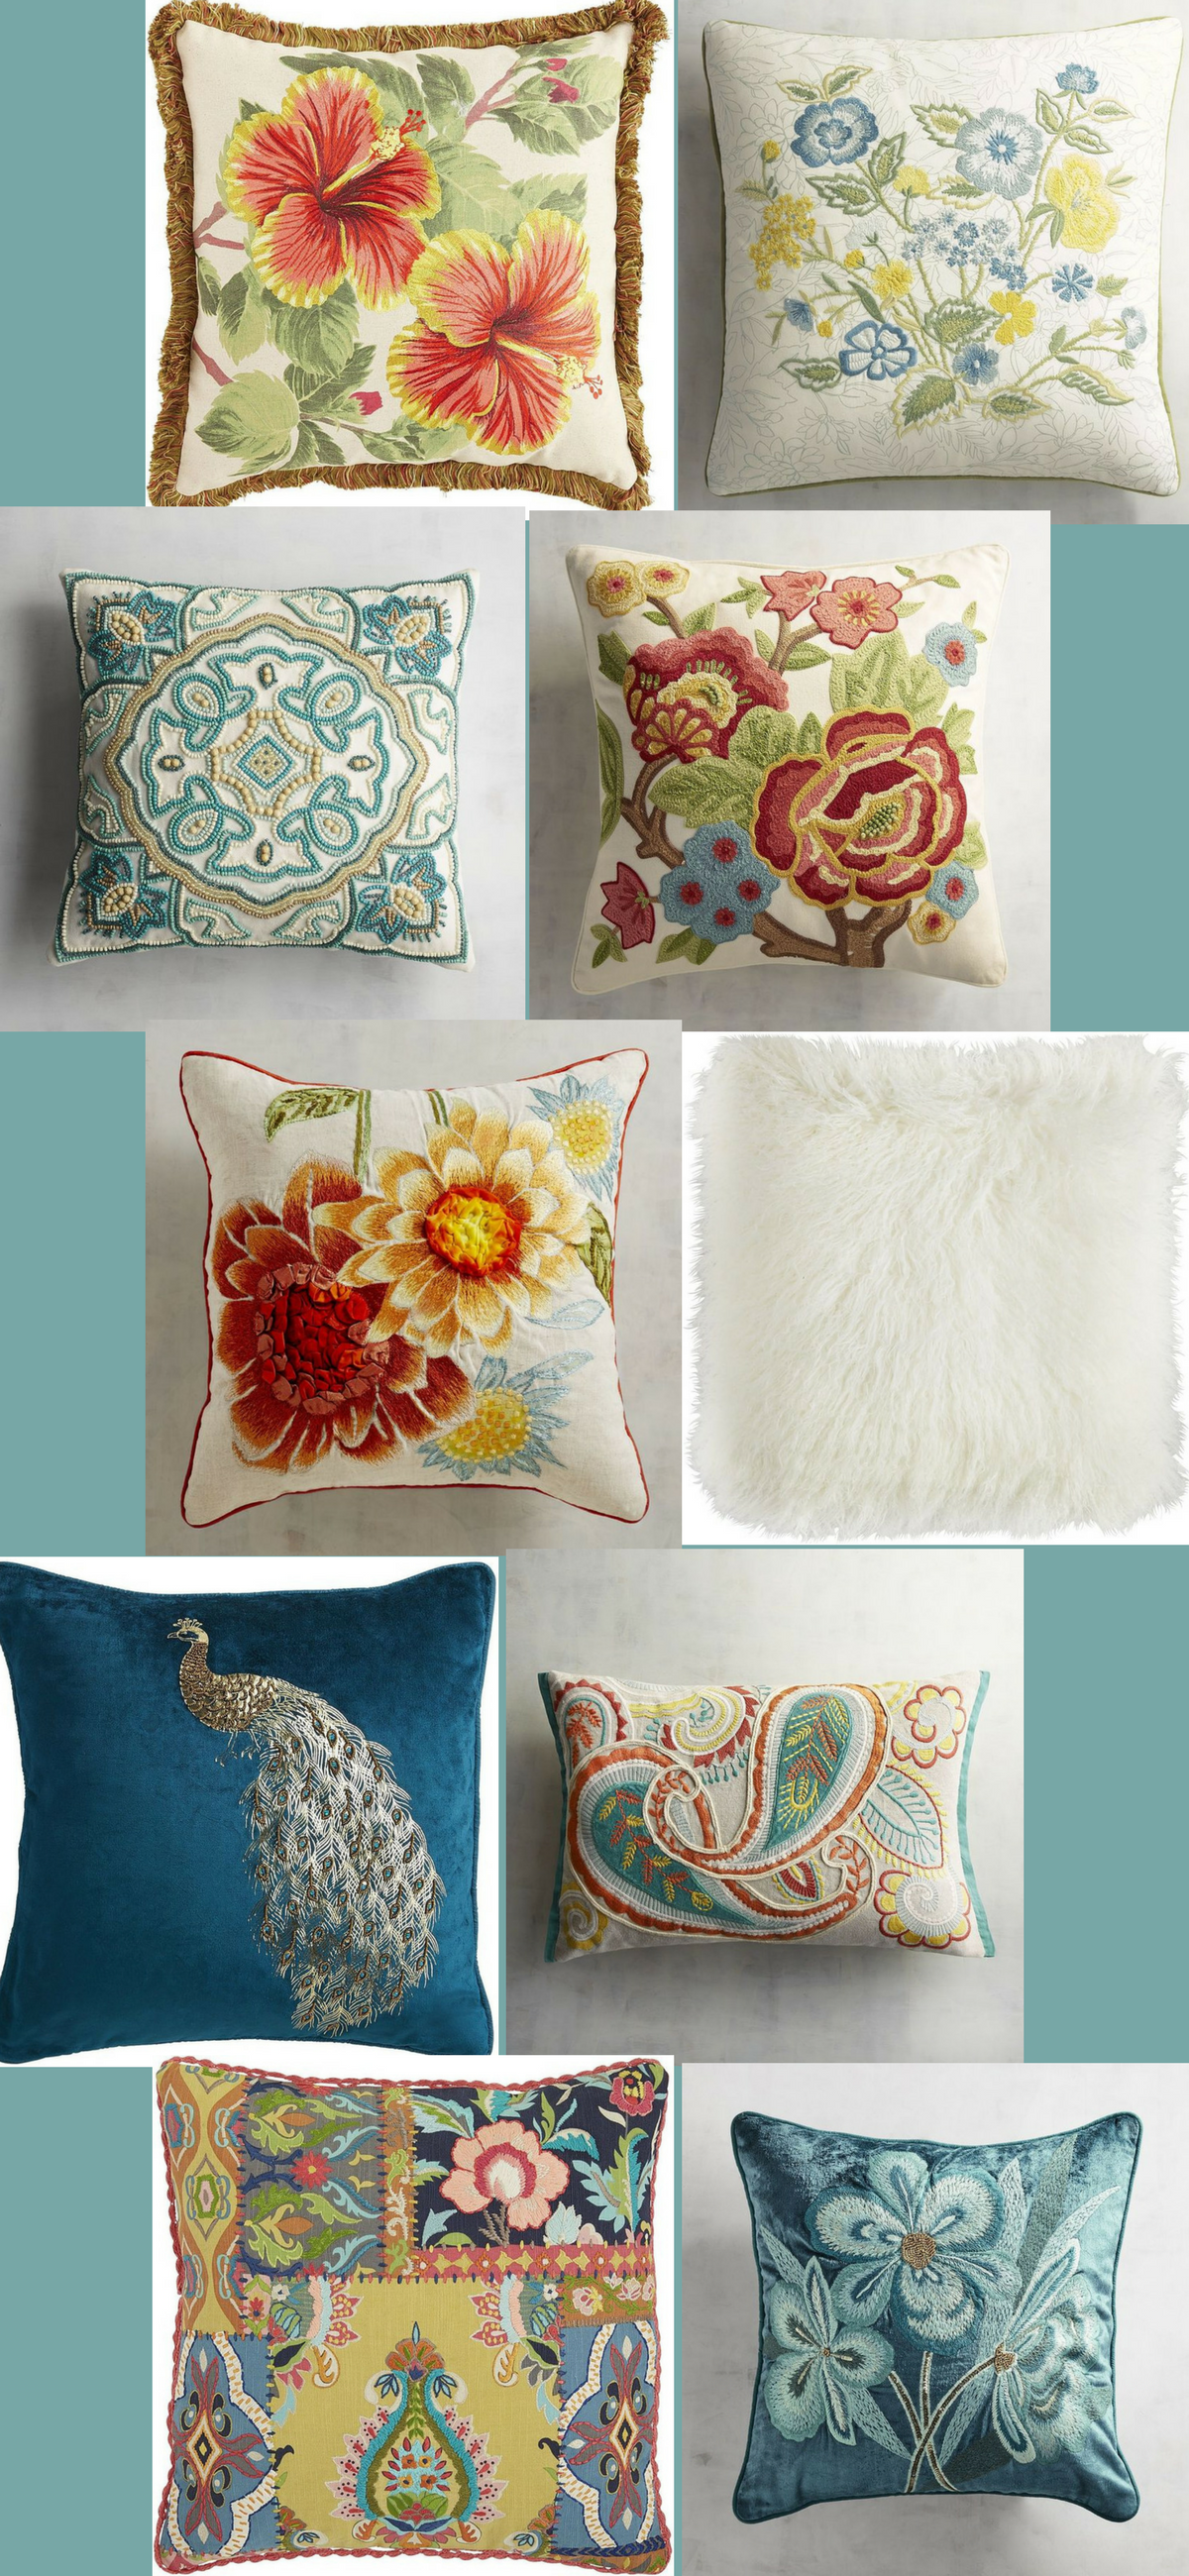 These Gorgeous Pillows Are Perfect For Decorating The Living Room,